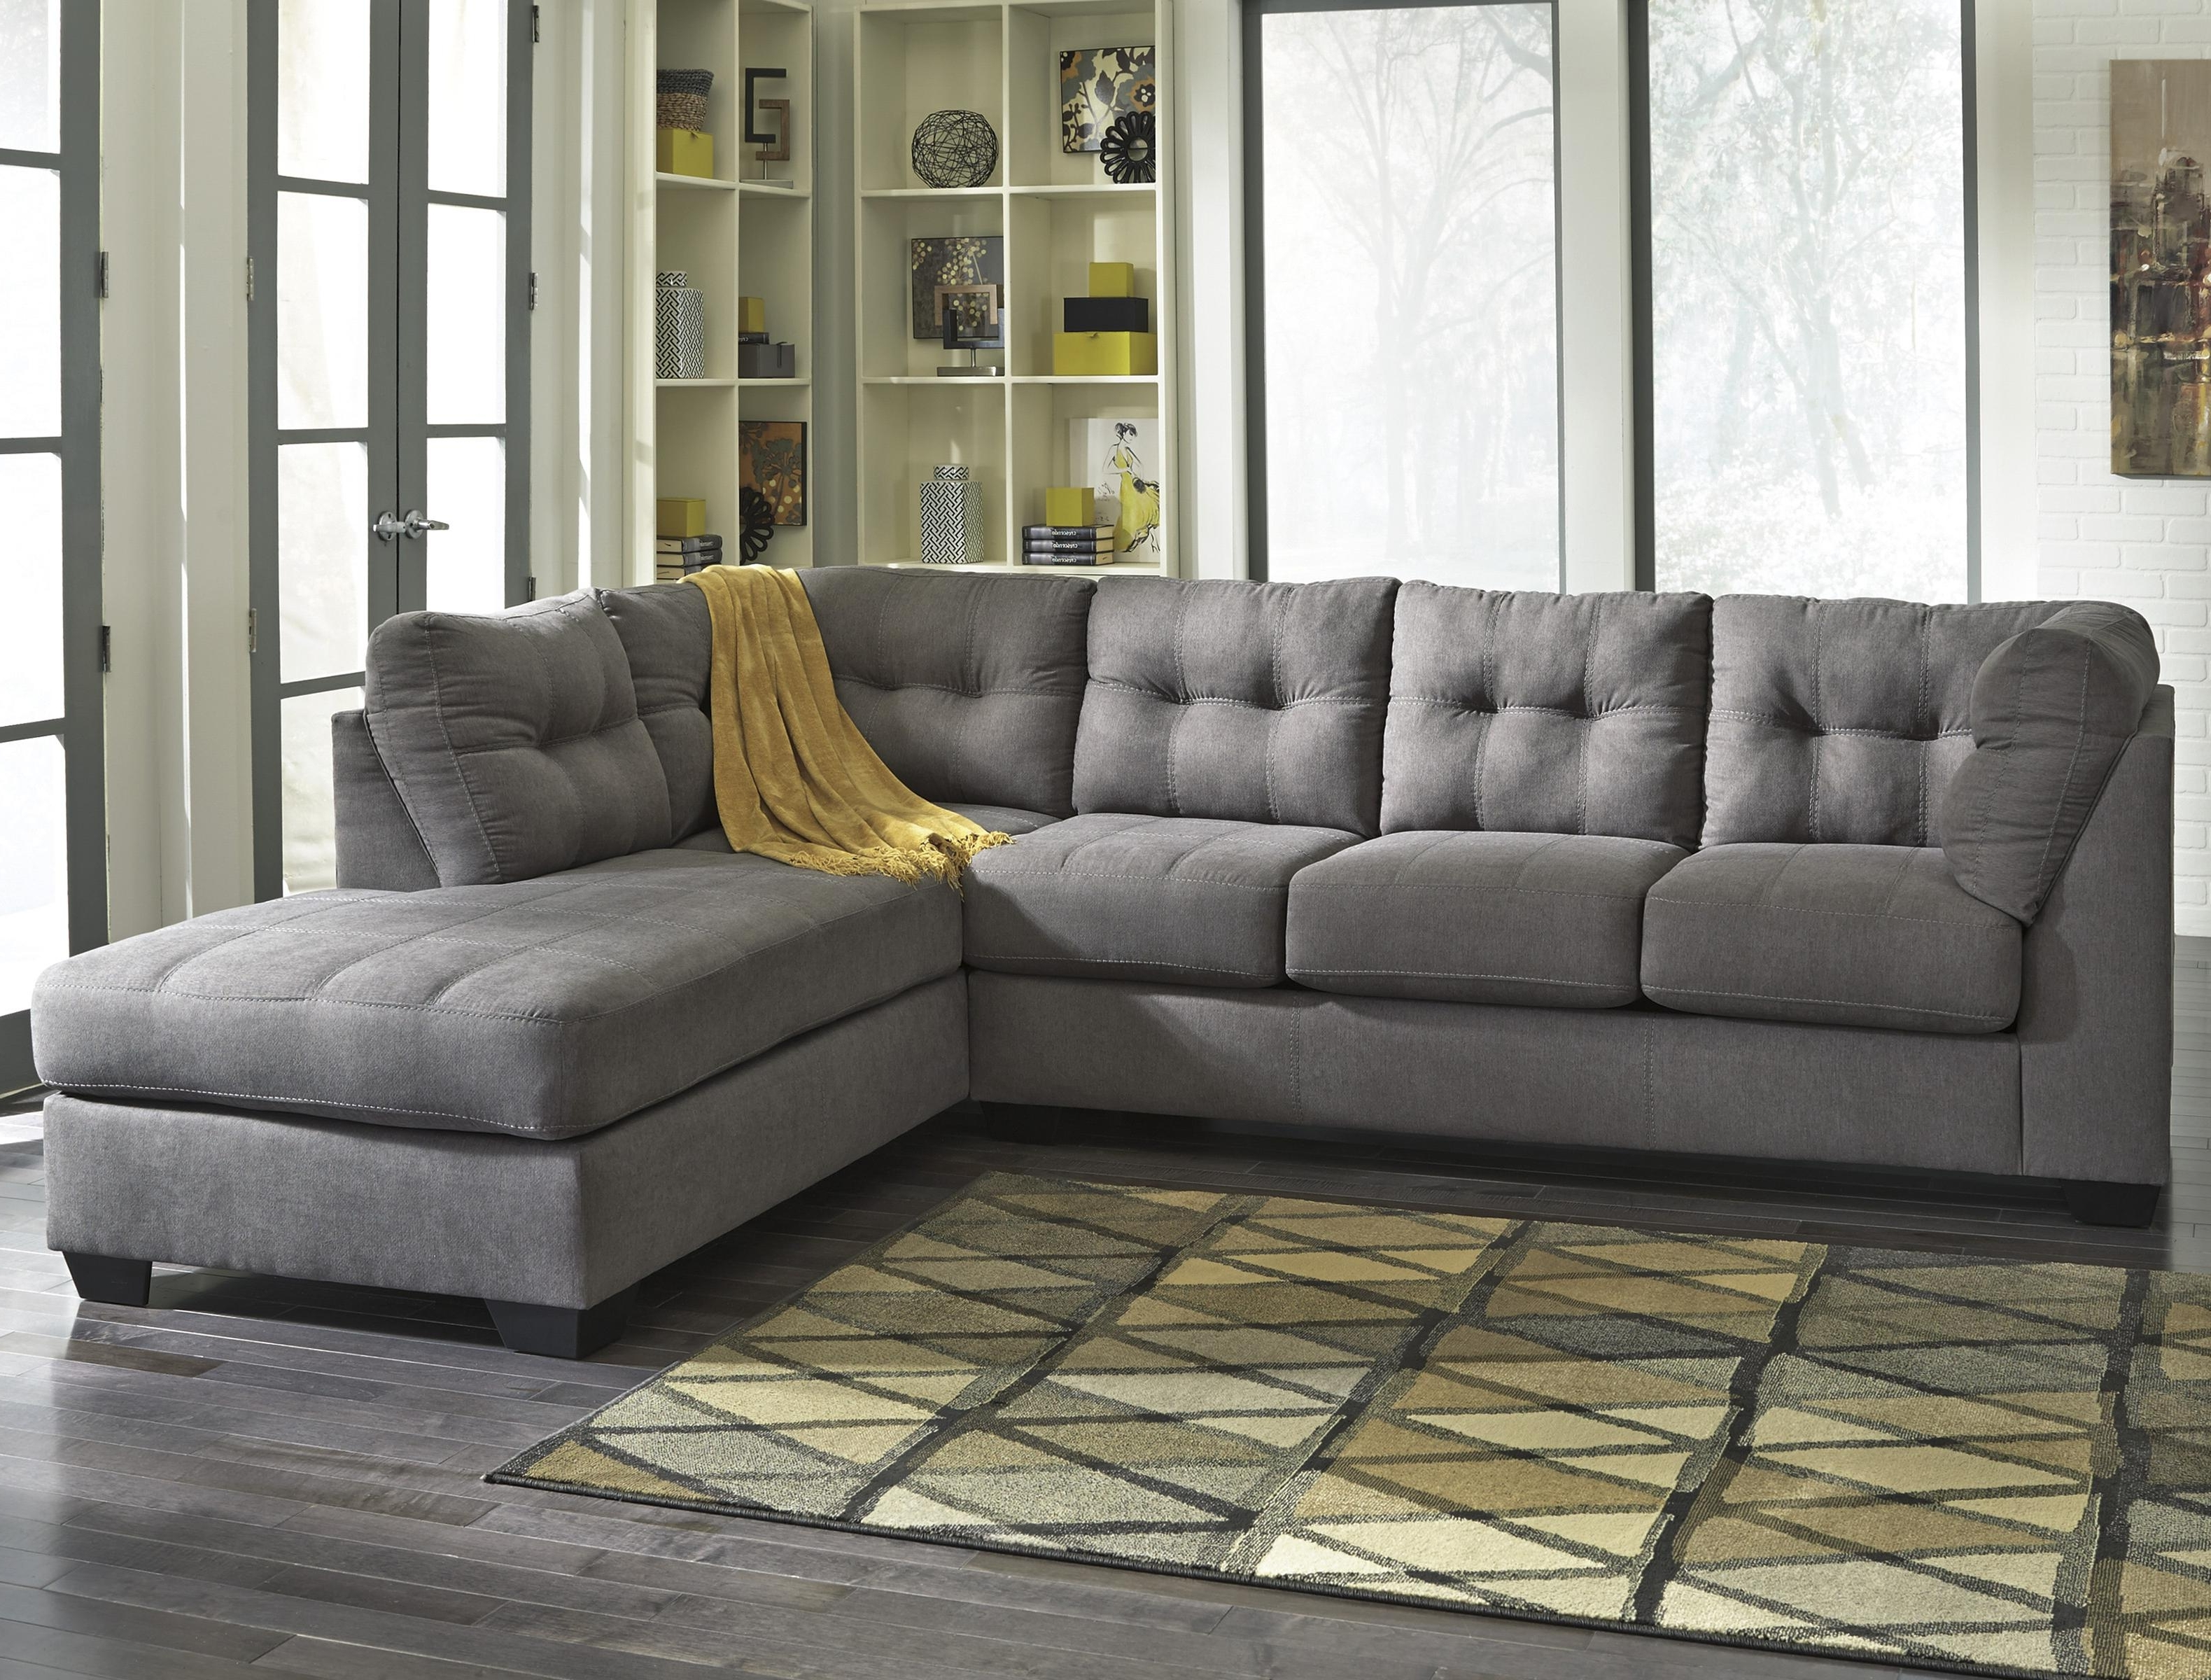 East Bay Sectional Sofas Pertaining To Popular Benchcraft Maier – Charcoal 2 Piece Sectional With Right Chaise (View 3 of 15)